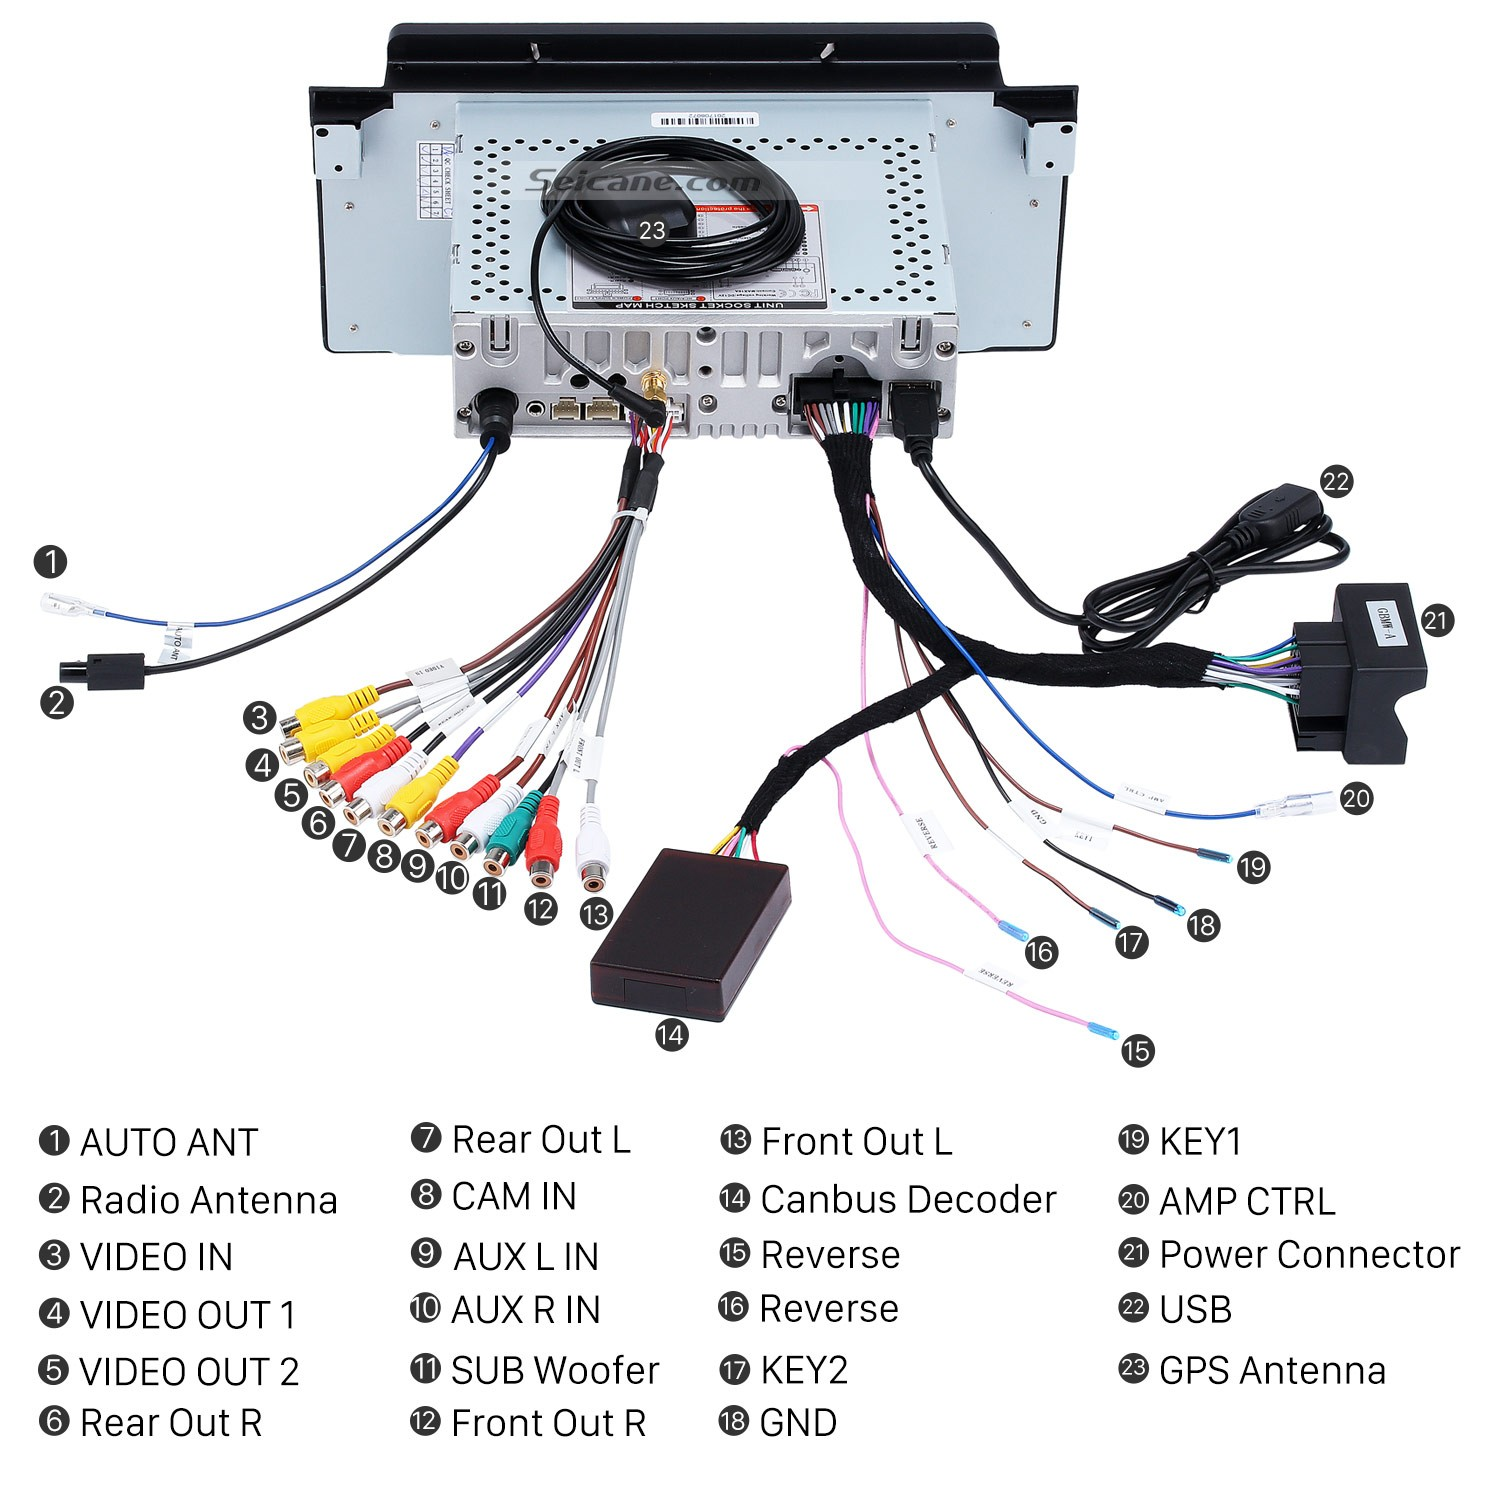 bmw x5 e53 radio wiring diagram of house how to upgrade a 2000 2007 3 0i 0d 4 4i 6is